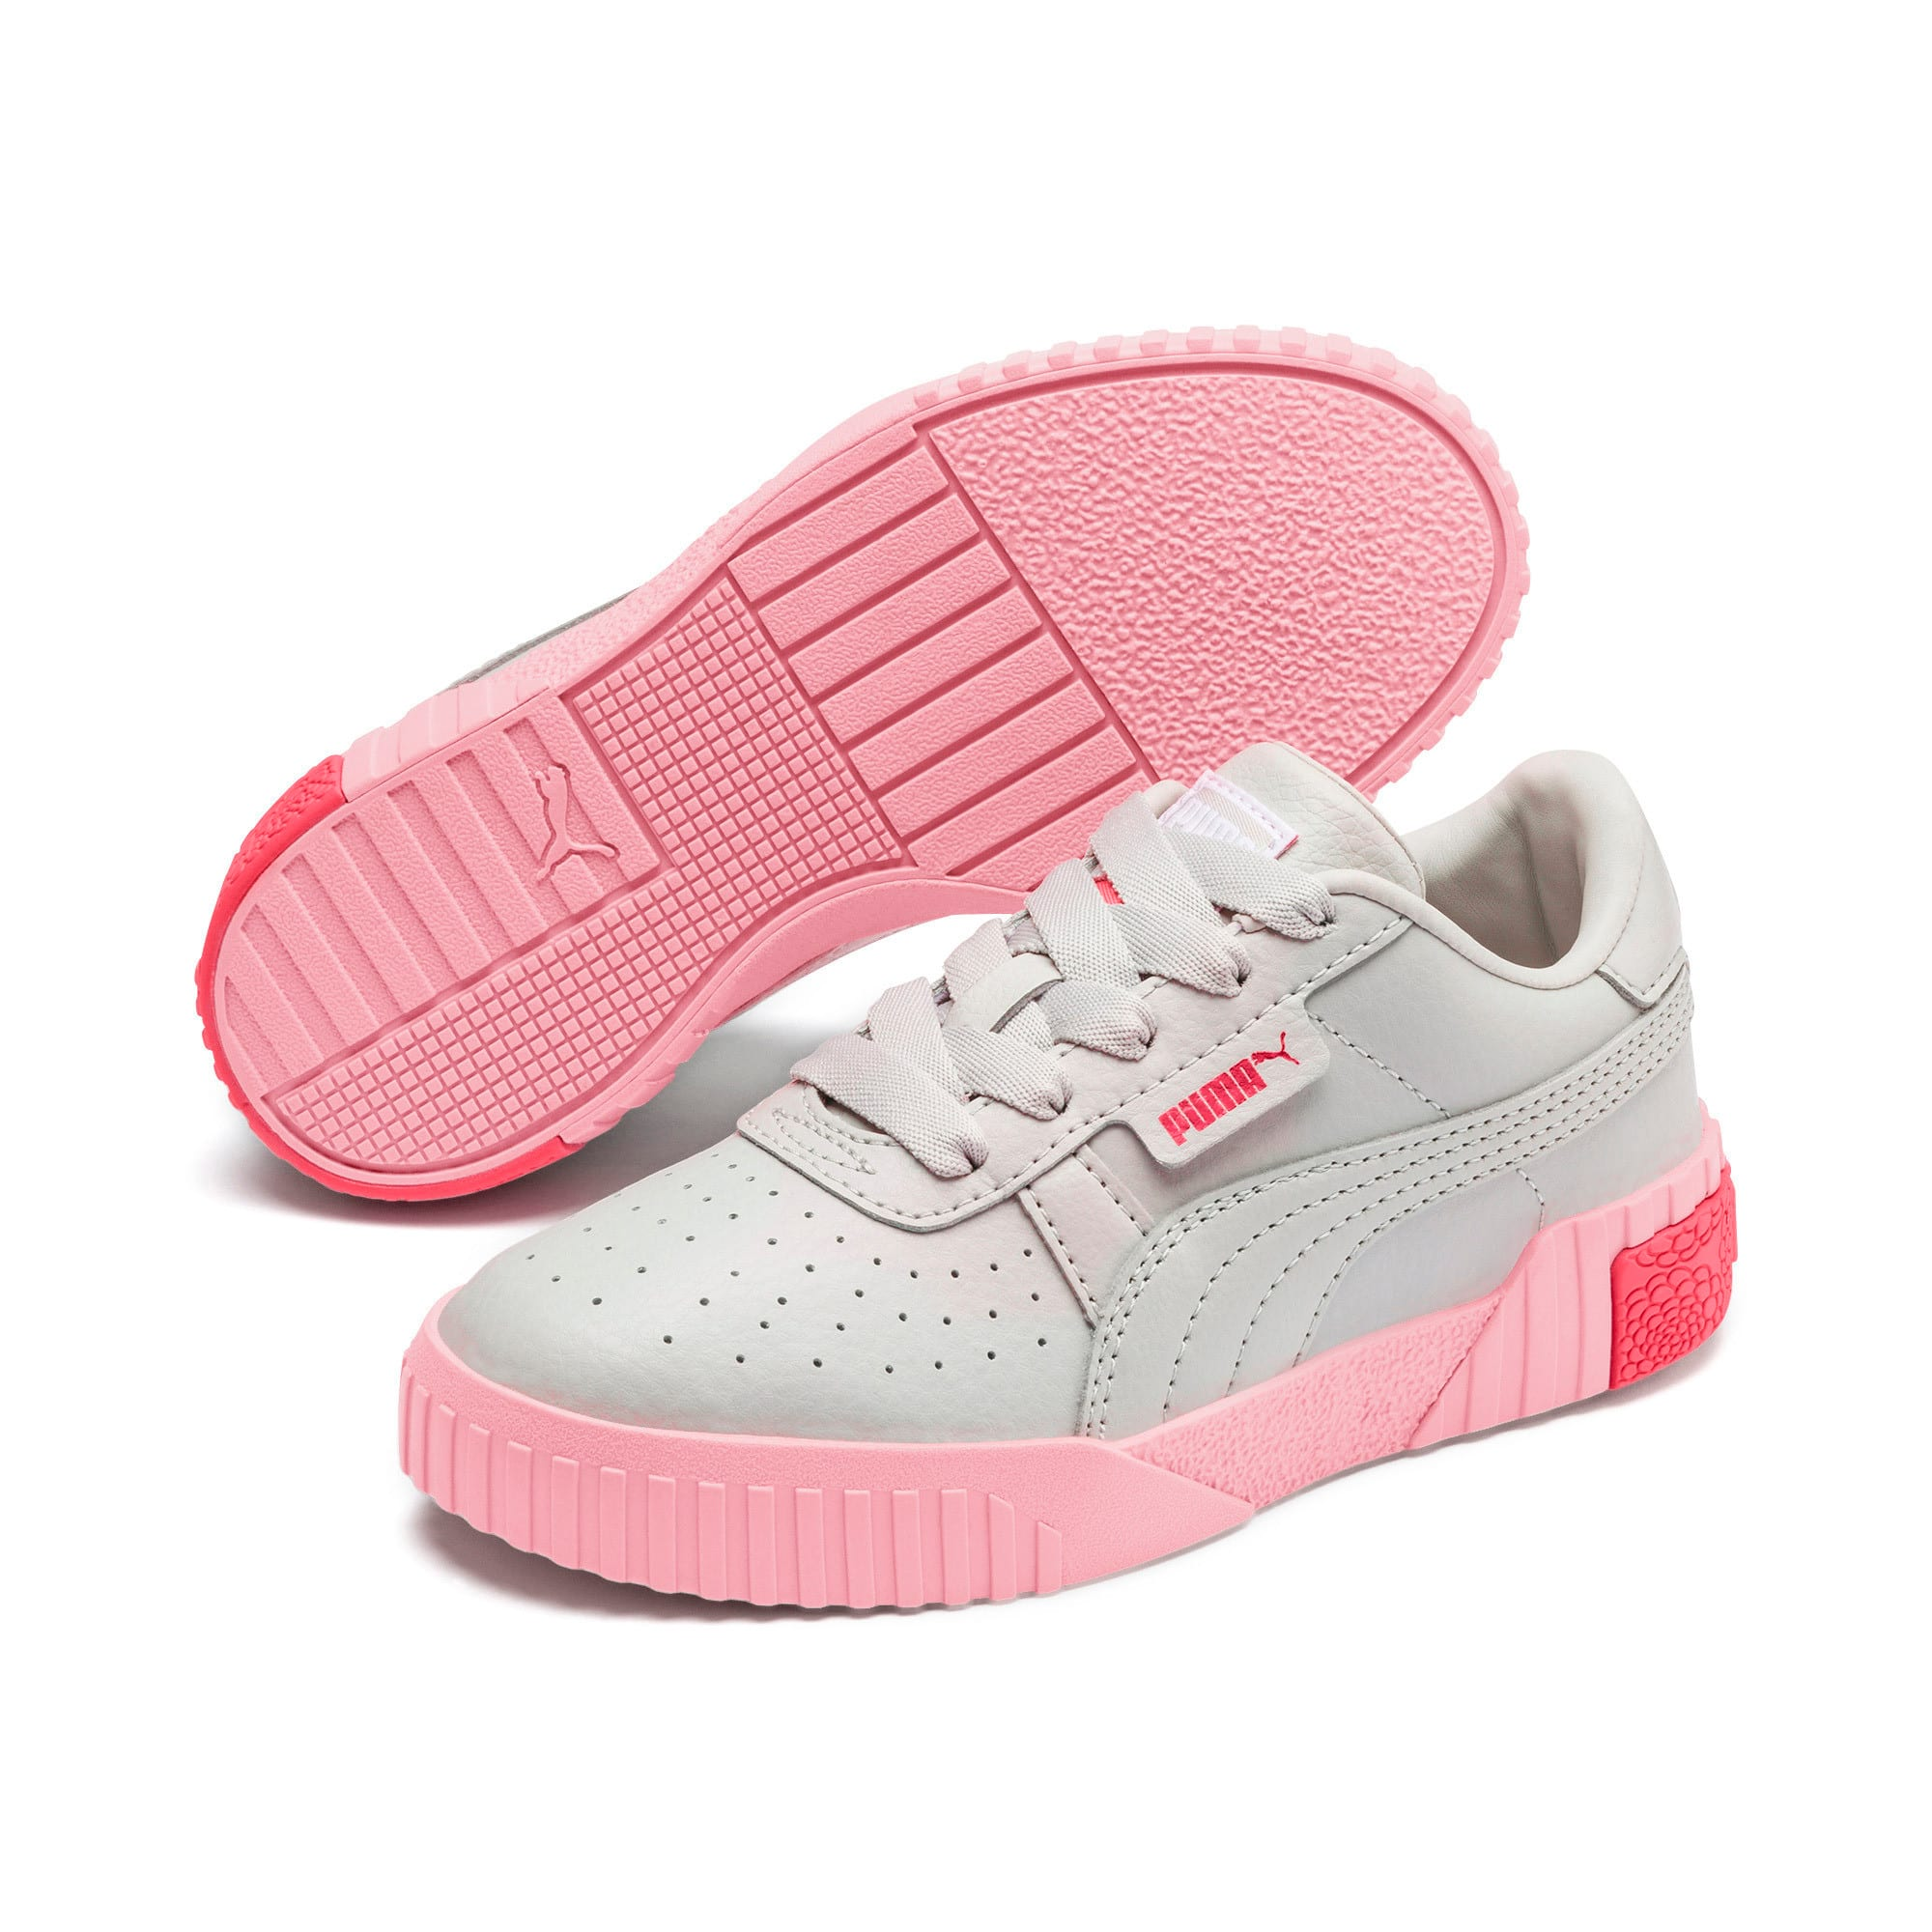 Thumbnail 2 of Cali Kids' Mädchen Sneaker, Gray Violet-Calypso Coral, medium